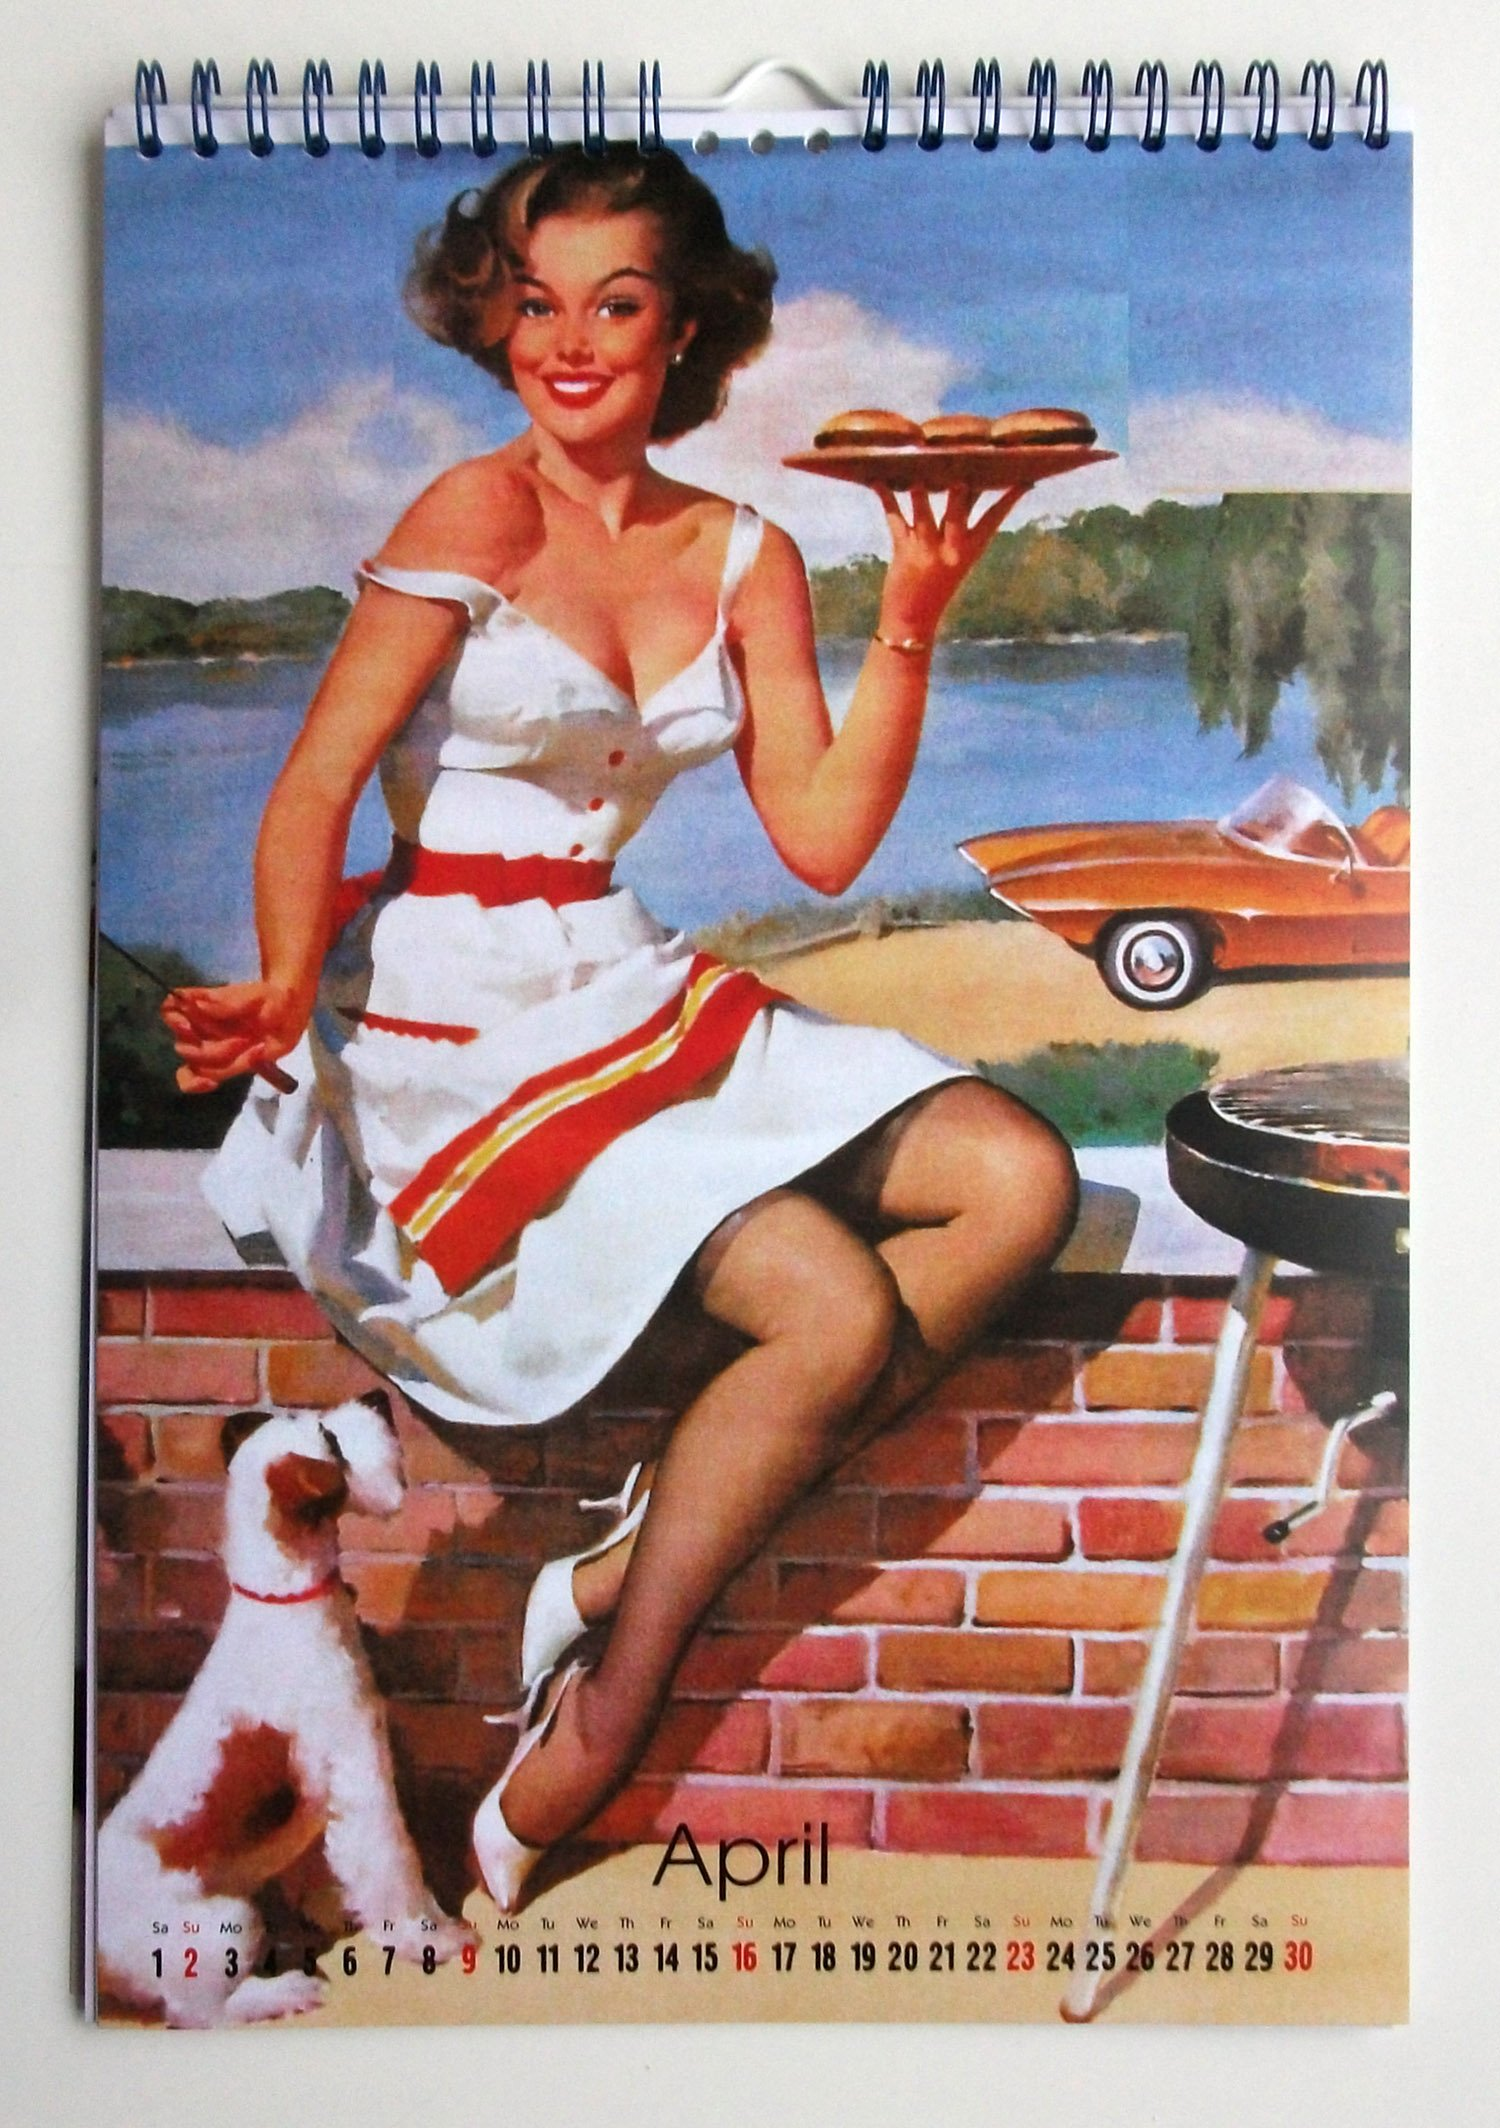 dfa788465a1 2019 Wall Calendar 12 pages 20x30cm Gil Elvgren Pinup Sexy Girls Vintage  Posters M538  Amazon.co.uk  Pixiluv  Books